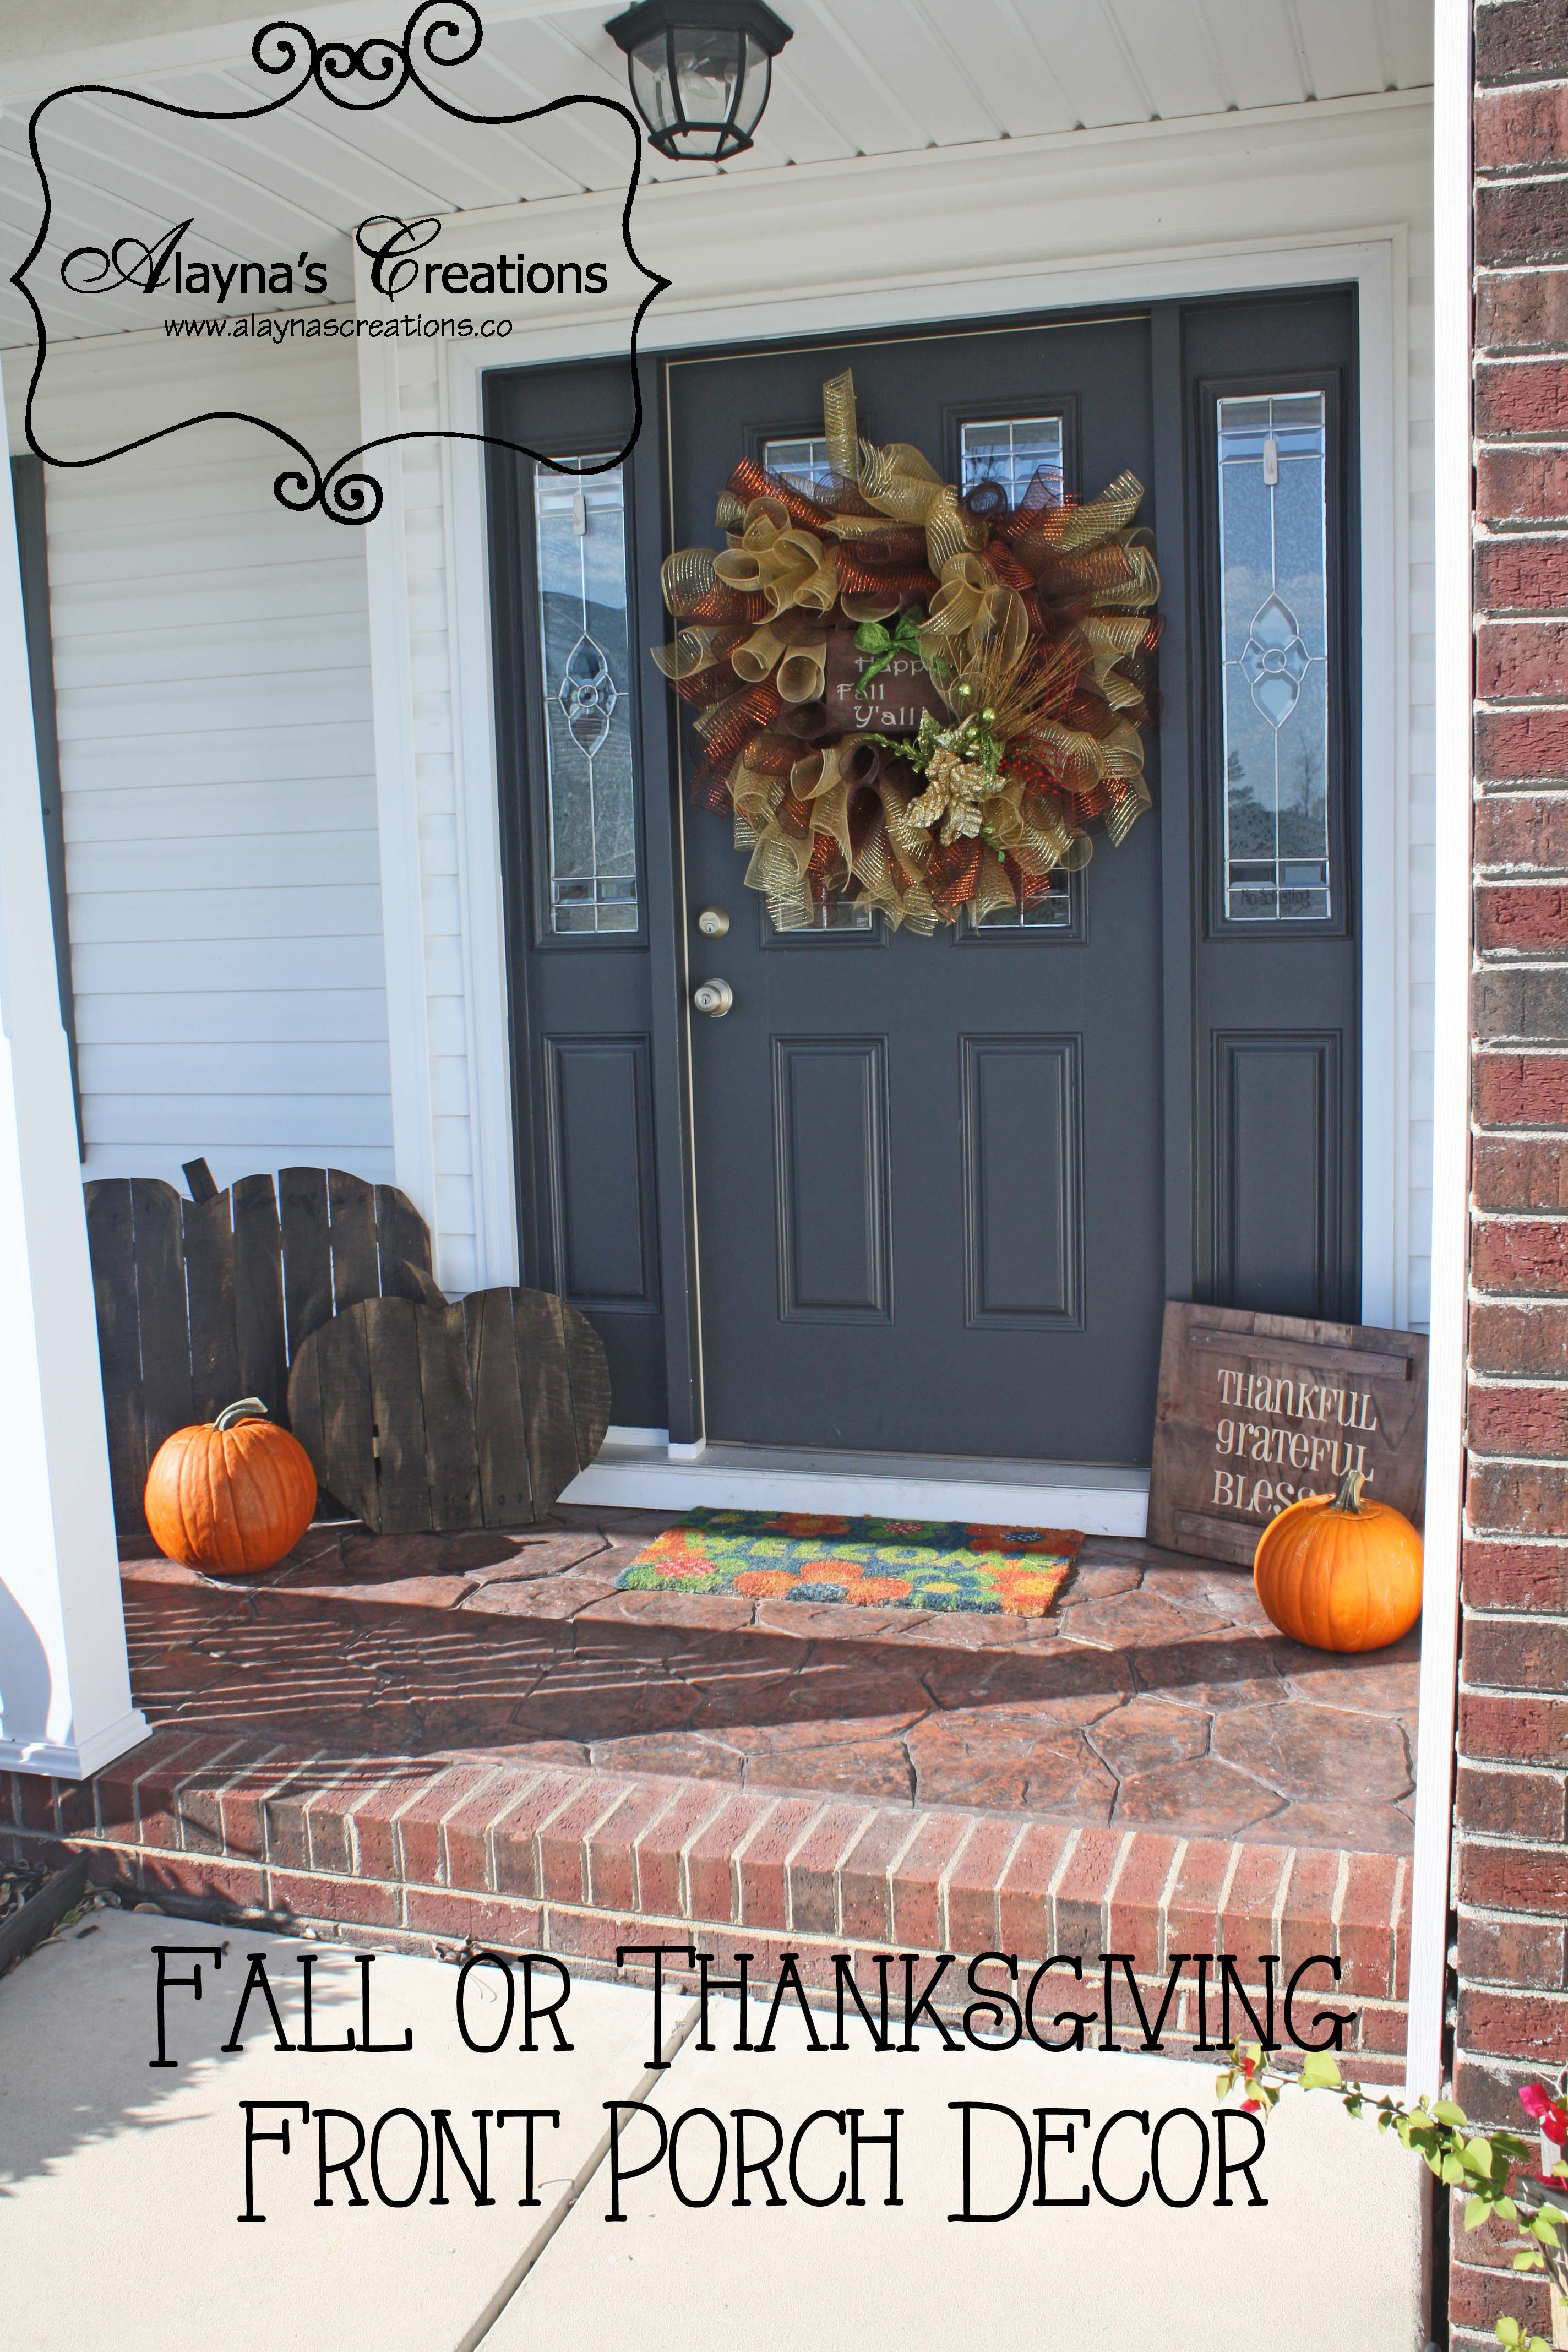 Diy Wooden Sign For Fall Double Sided For Halloween And Thanksgiving Alaynascreations